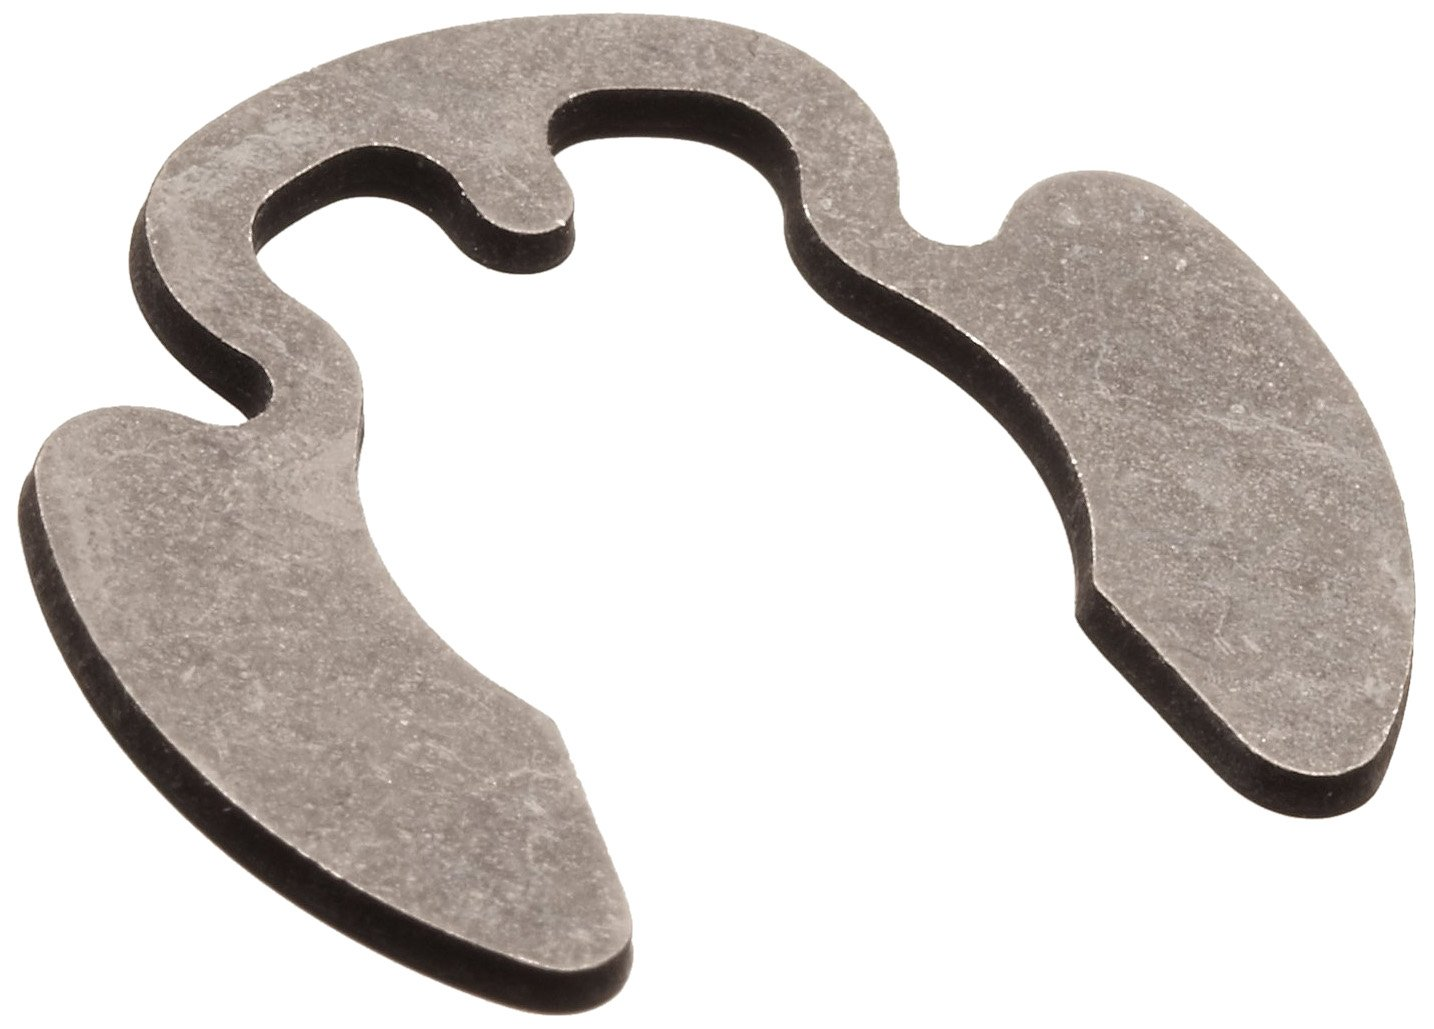 Poodle External Retaining Ring, Tapered Section, Radial Assembly, 1060-1090 Carbon Steel, Phosphate Finish, 5/8'' Shaft Diameter, 0.050'' Thick, Made in US (Pack of 50)